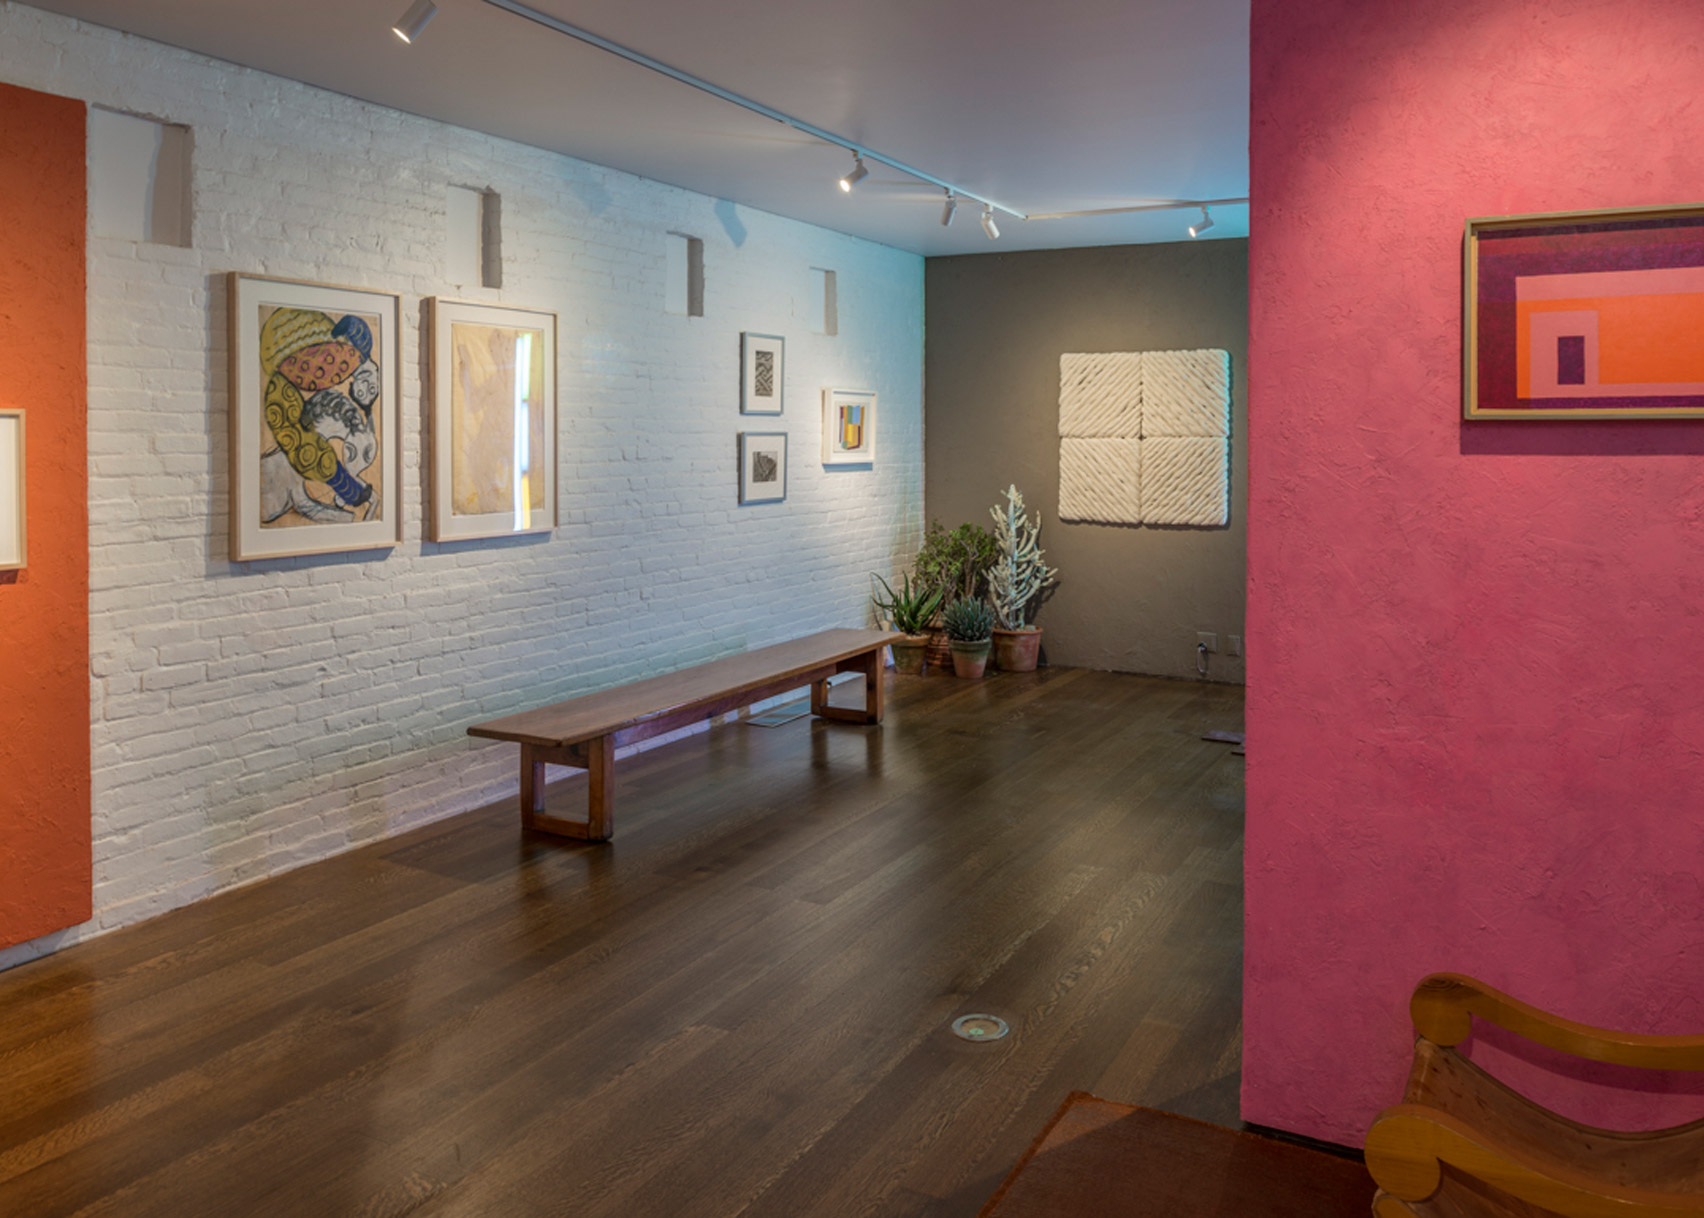 Architecture of Color: The Legacy of Luis Barragán exhibition at Timothy Taylor, New York